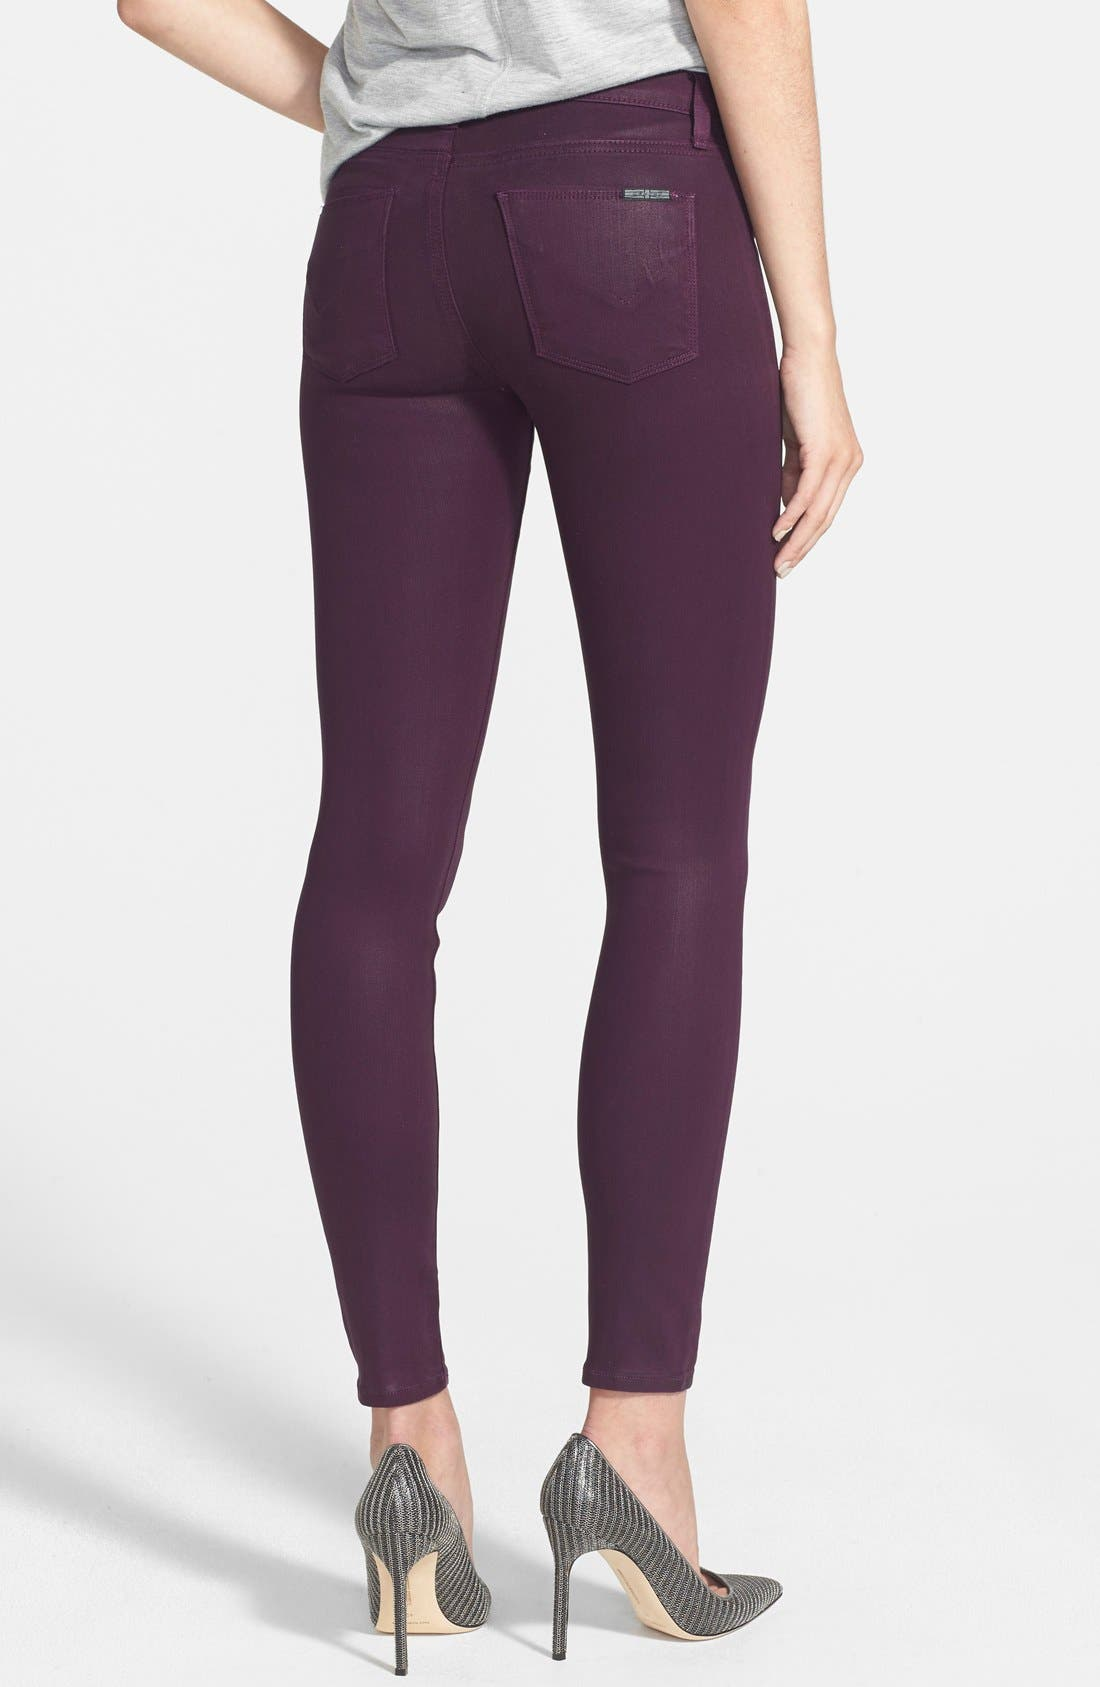 Alternate Image 2  - Hudson Jeans 'Nico' Mid Rise Skinny Stretch Jeans (Mulberry Wax)